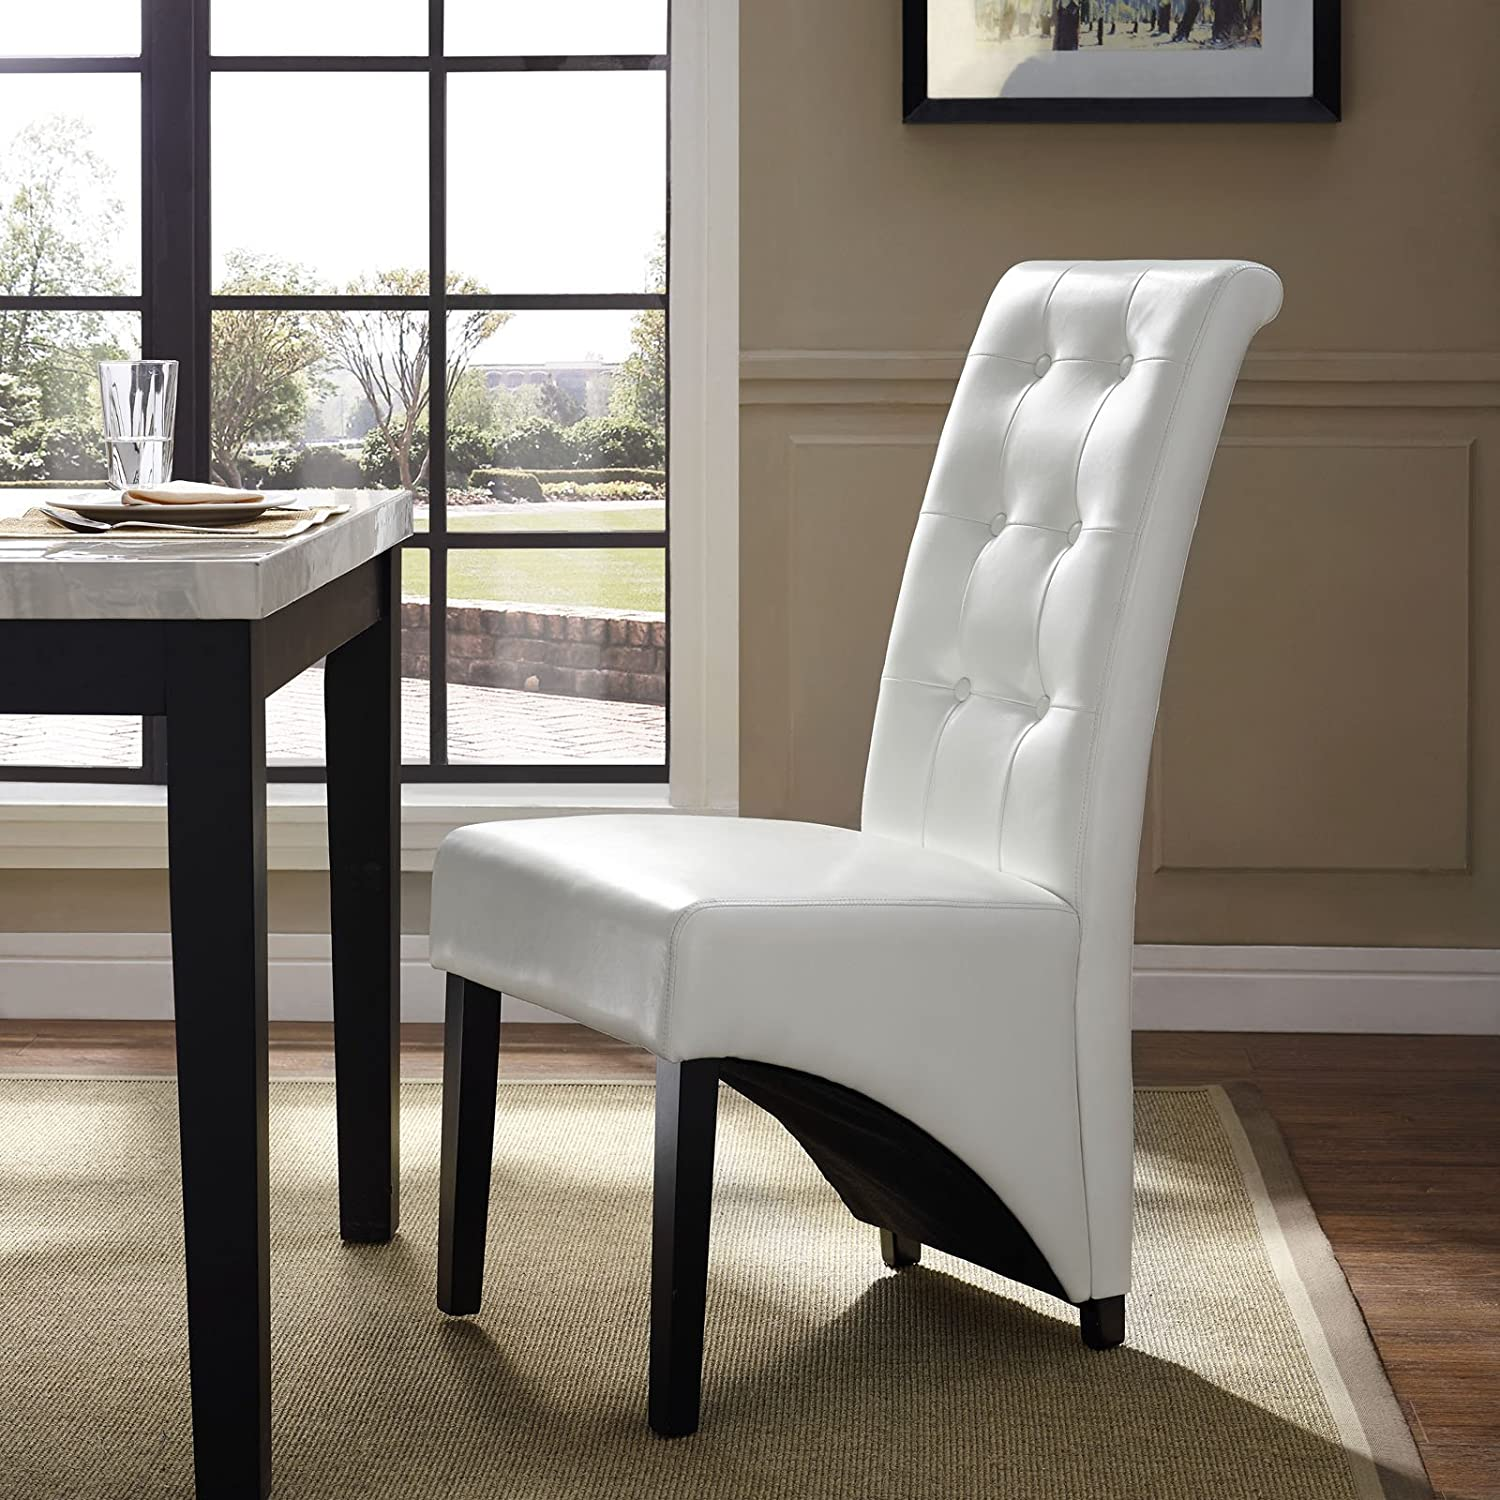 Modway Preside Dining Memory Foam Side Chair in White